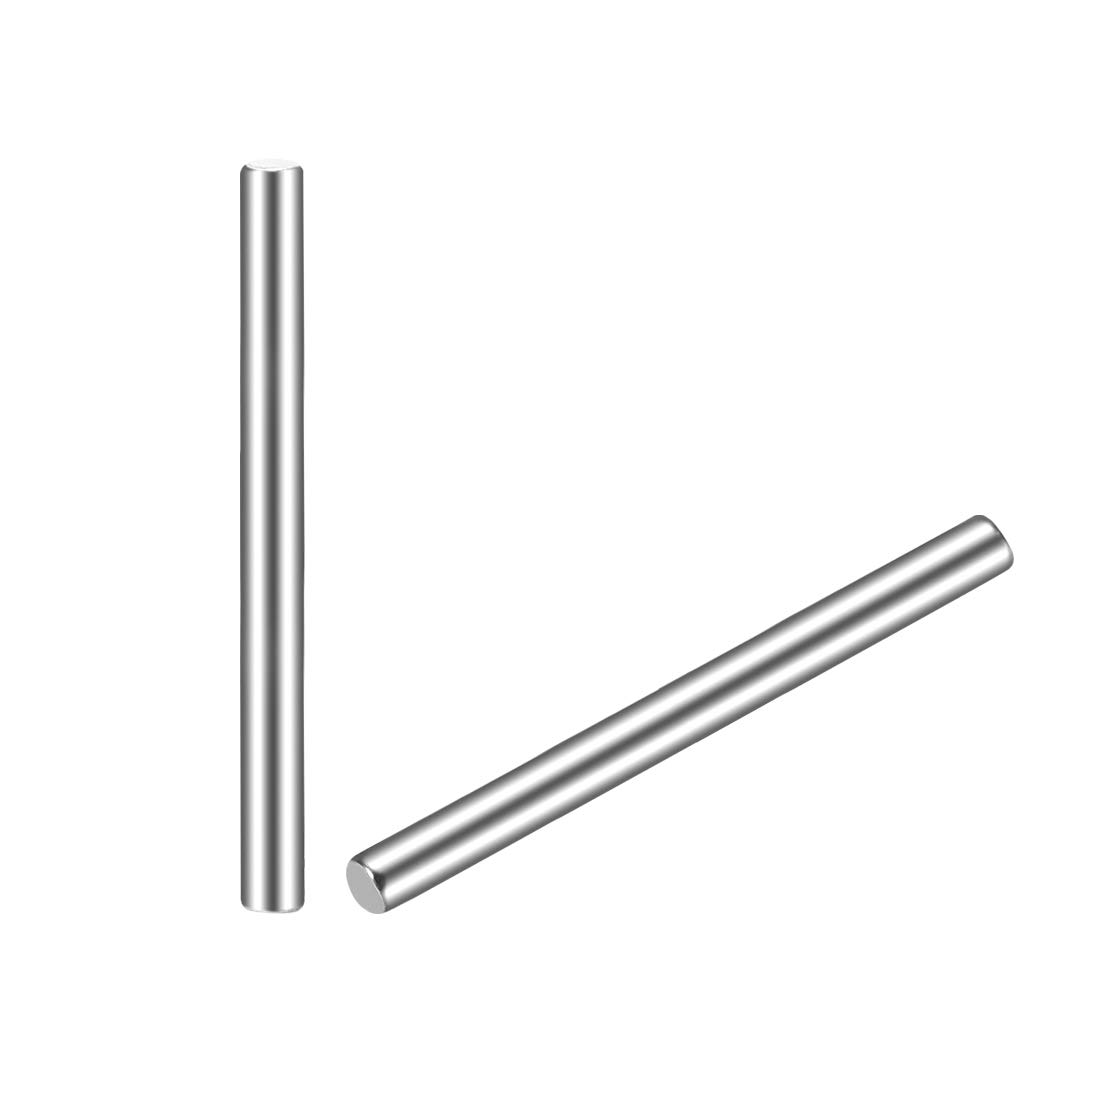 sourcing map 20Pcs 2mm x 18mm Dowel Pin 304 Stainless Steel Cylindrical Shelf Support Pin Fasten Elements Silver Tone